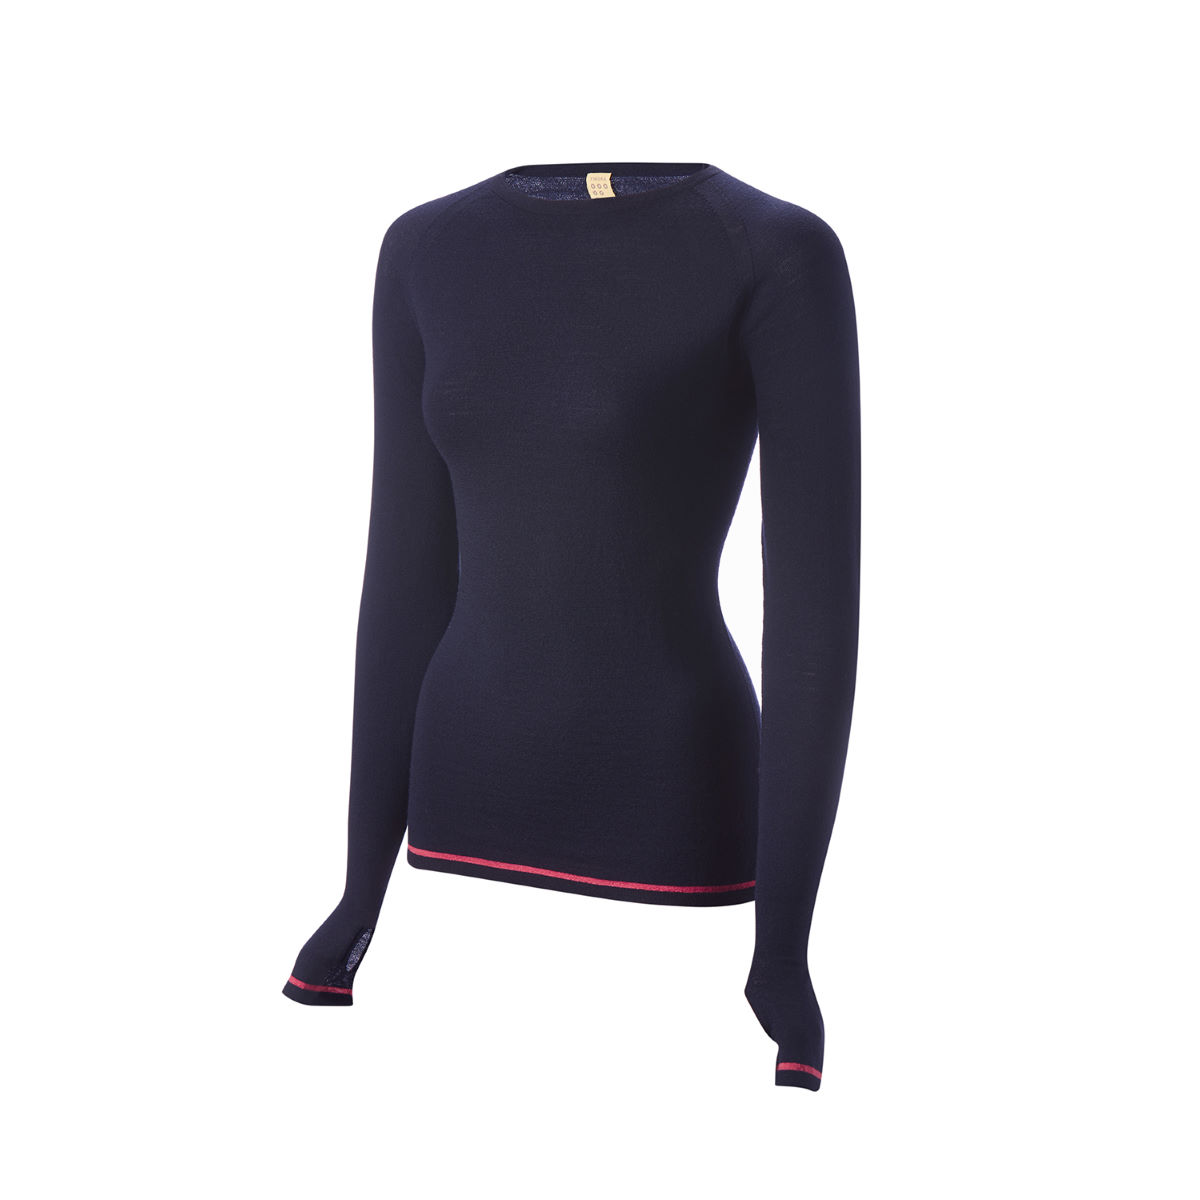 Maillot de corps Femme FINDRA - XS Dark Navy/Coral